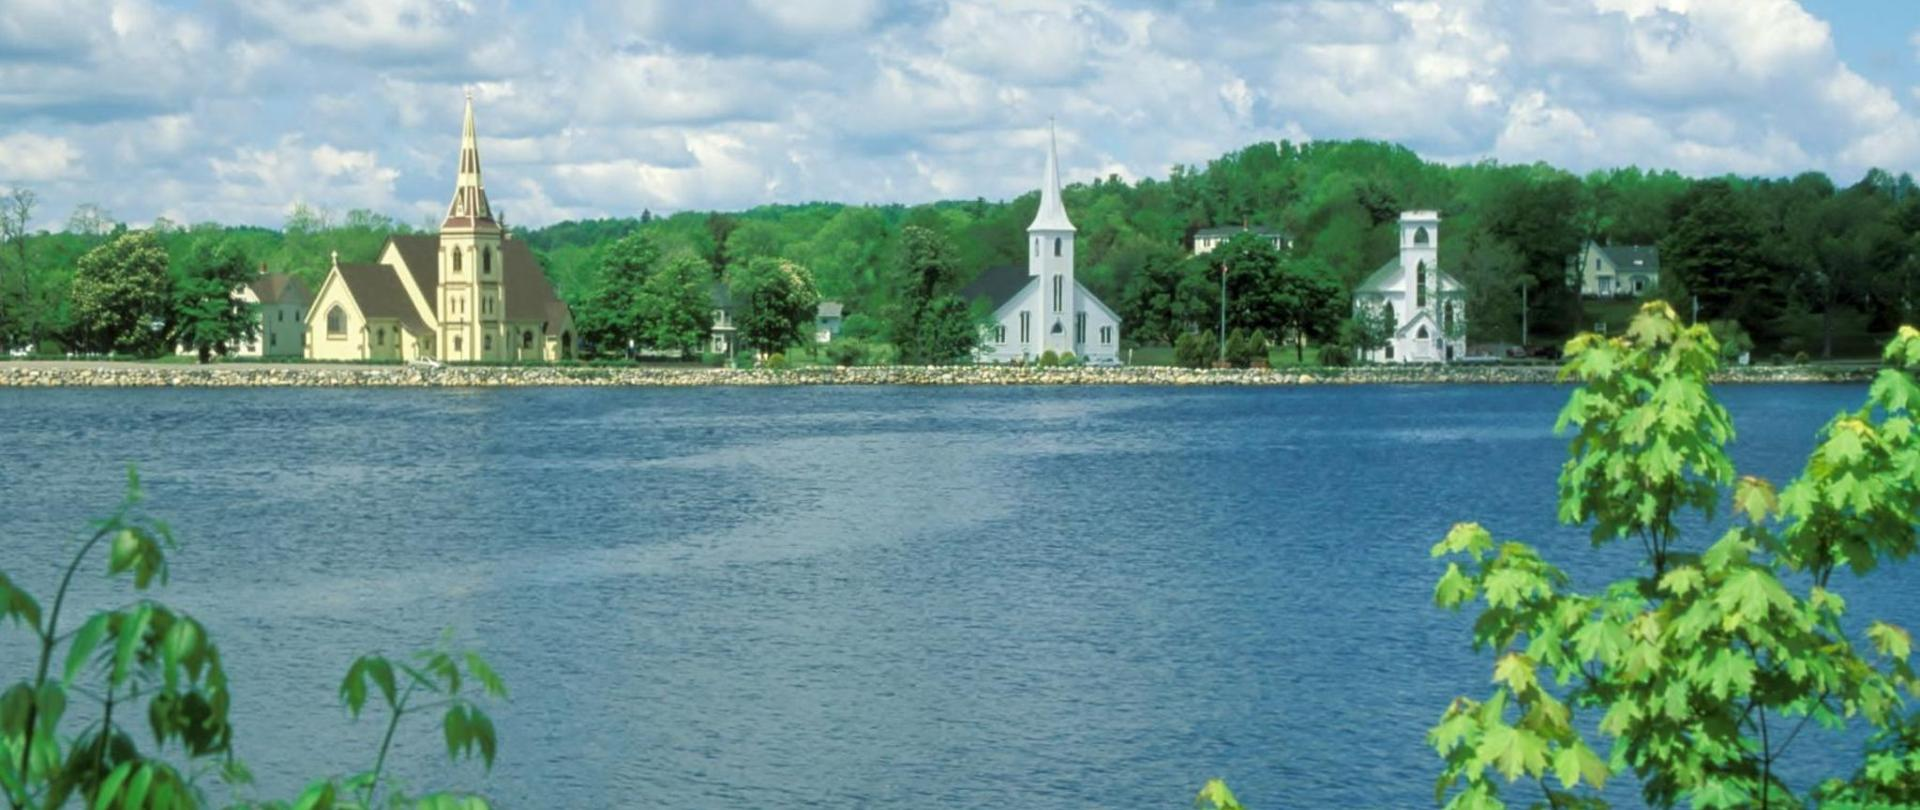 mahone-bay-churches-21.jpg